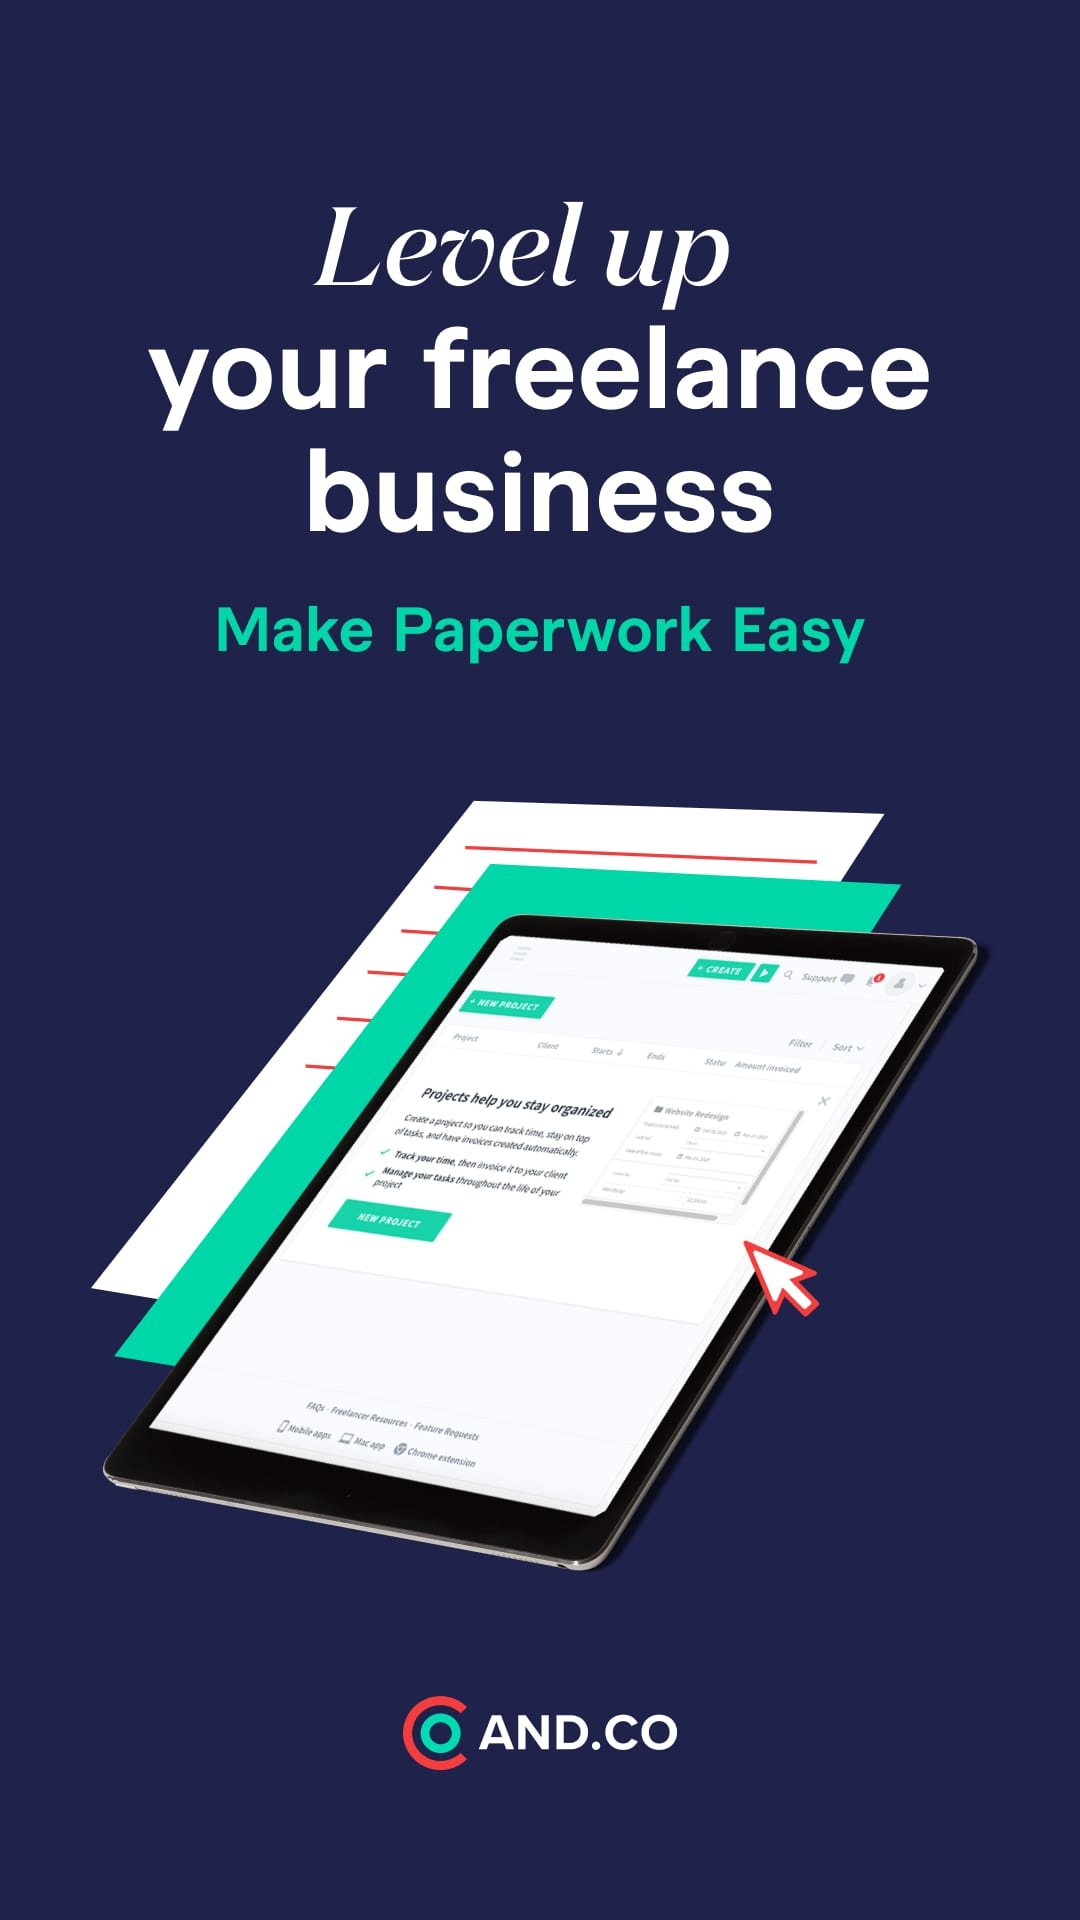 AND.CO is a business management software designed for Entrepreneurs, Freelancers, Studios, etc. It is an one-stop-app for preparing proposals, contracts, projects, invoices, payments, time tracking, task management, income & expense tracking and reporting.